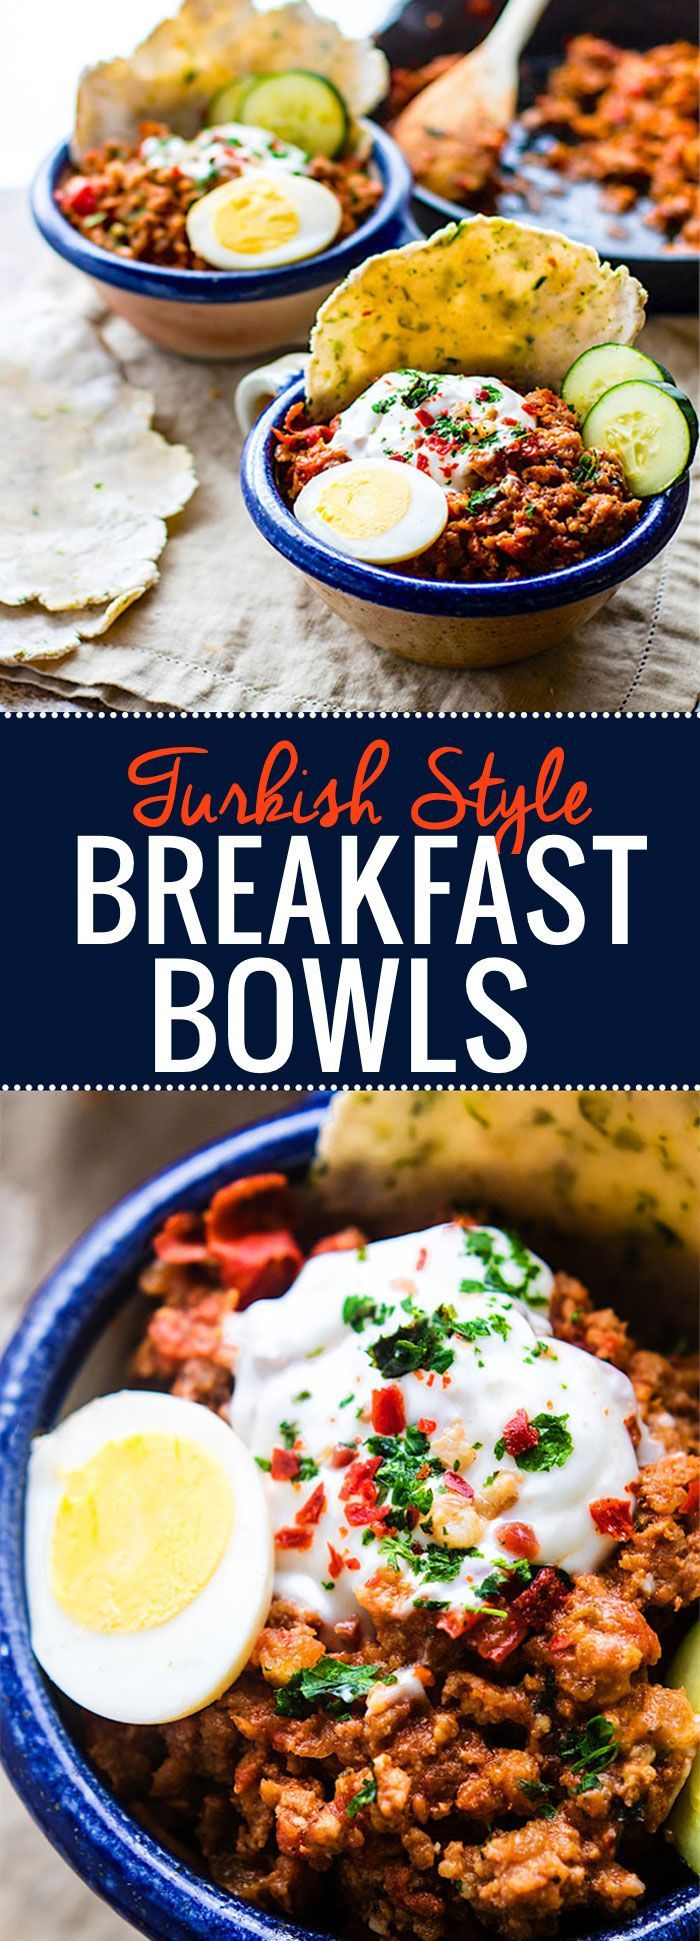 Grain Free Turkish Style Savory Breakfast Bowls. One pan is all you need to make these healthy savory breakfast bowls. Filled with spicy breakfast sausage, herbs, veggies, egg, and a tangy yogurt topping! Great for breakfast, brunch, or dinner. Perfect wi